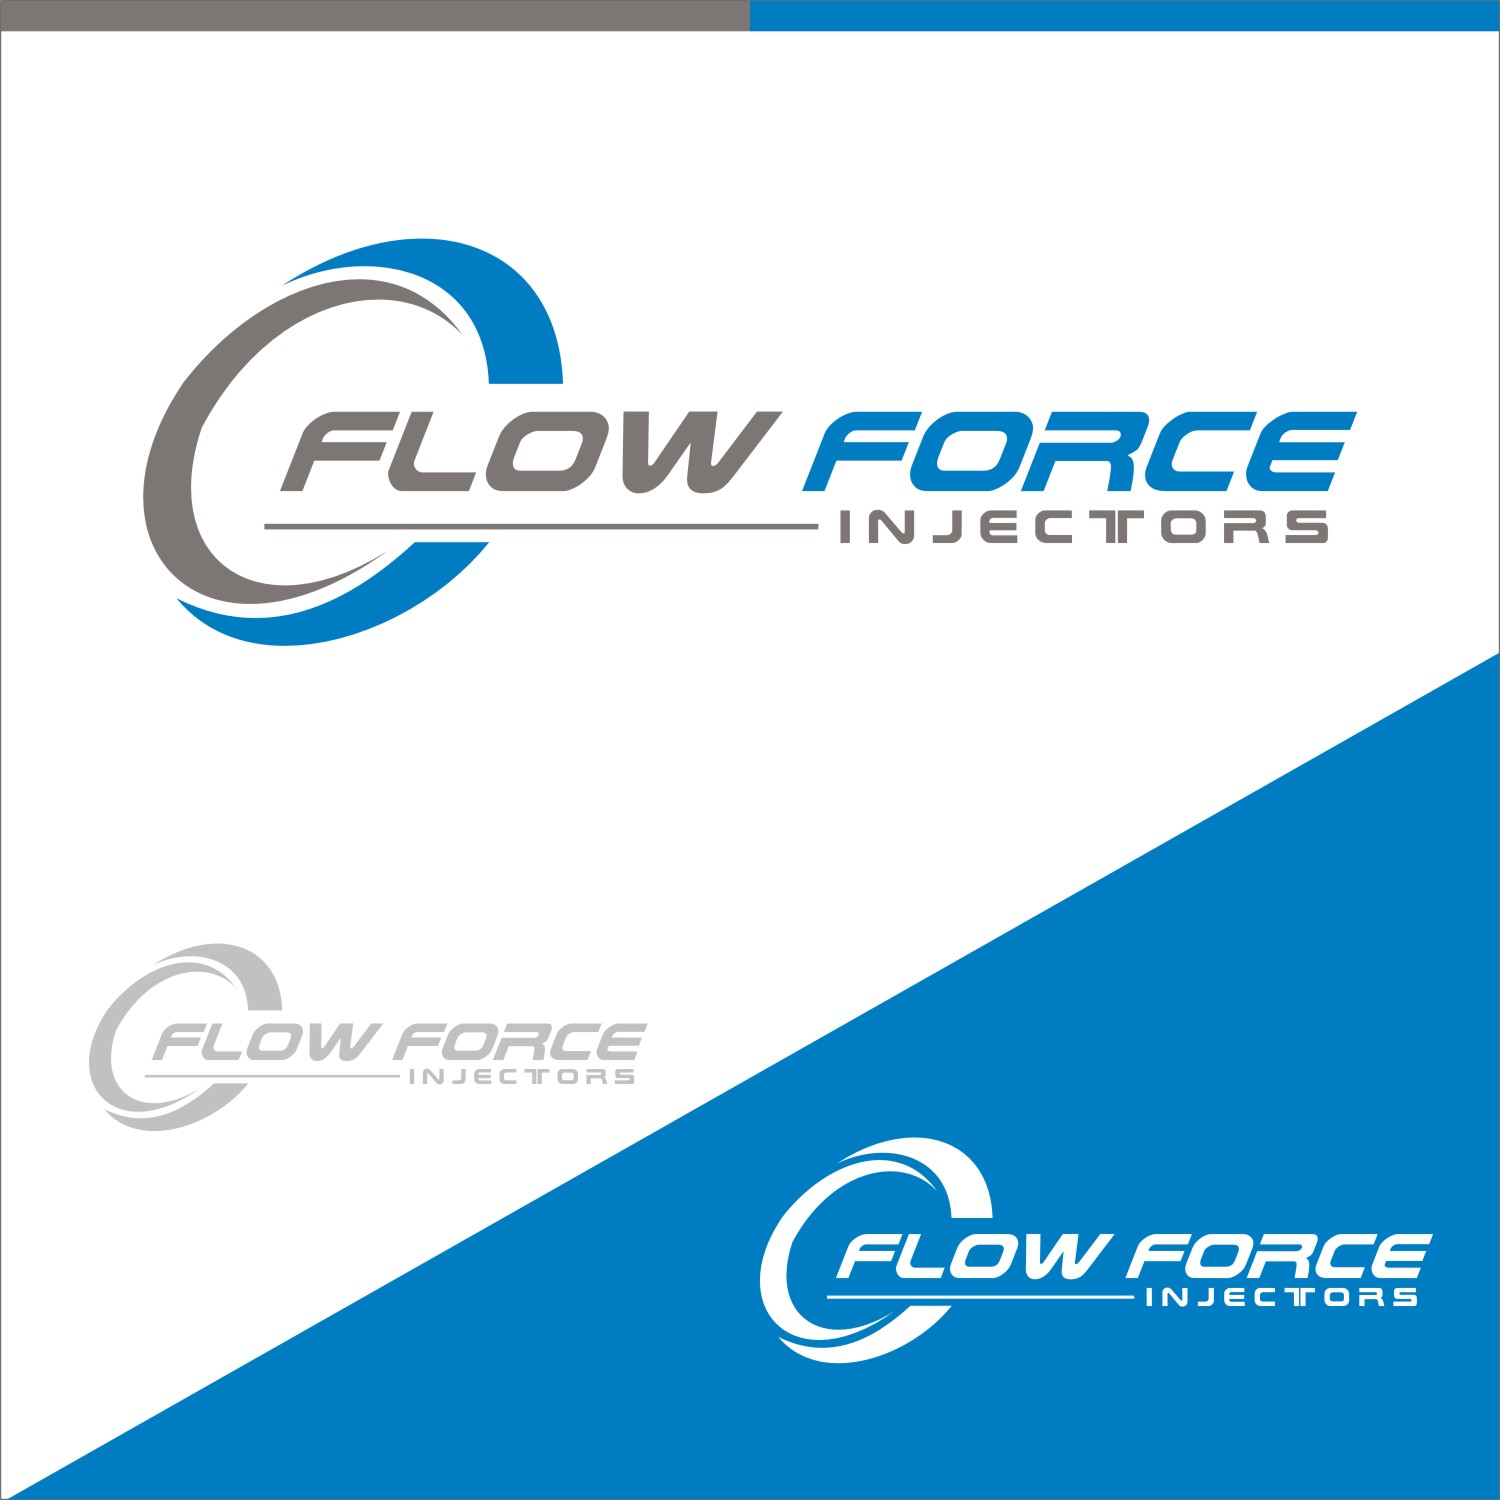 Logo Design by gryphon - Entry No. 98 in the Logo Design Contest Fun Logo Design for Flow Force Injectors.